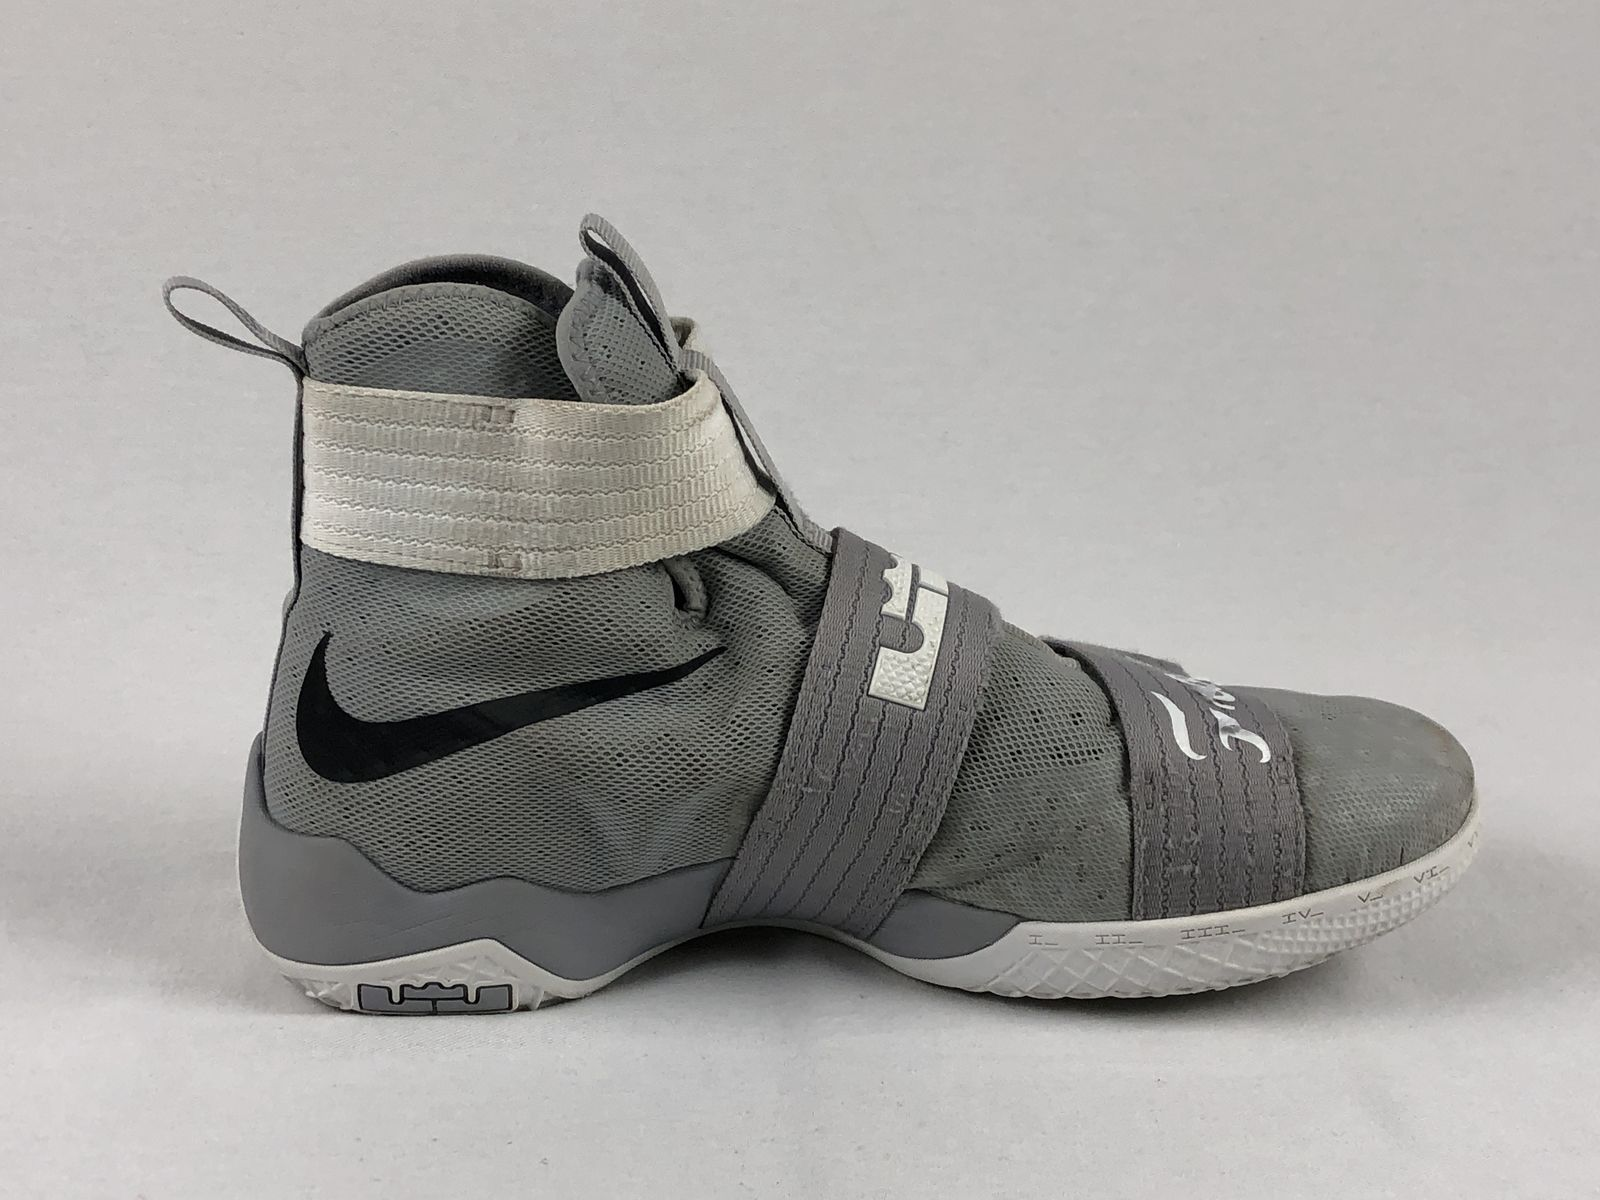 4c493efe2ca Nike Lebron Soldier 10 - Gray Basketball Shoes (Men s 13) - Used